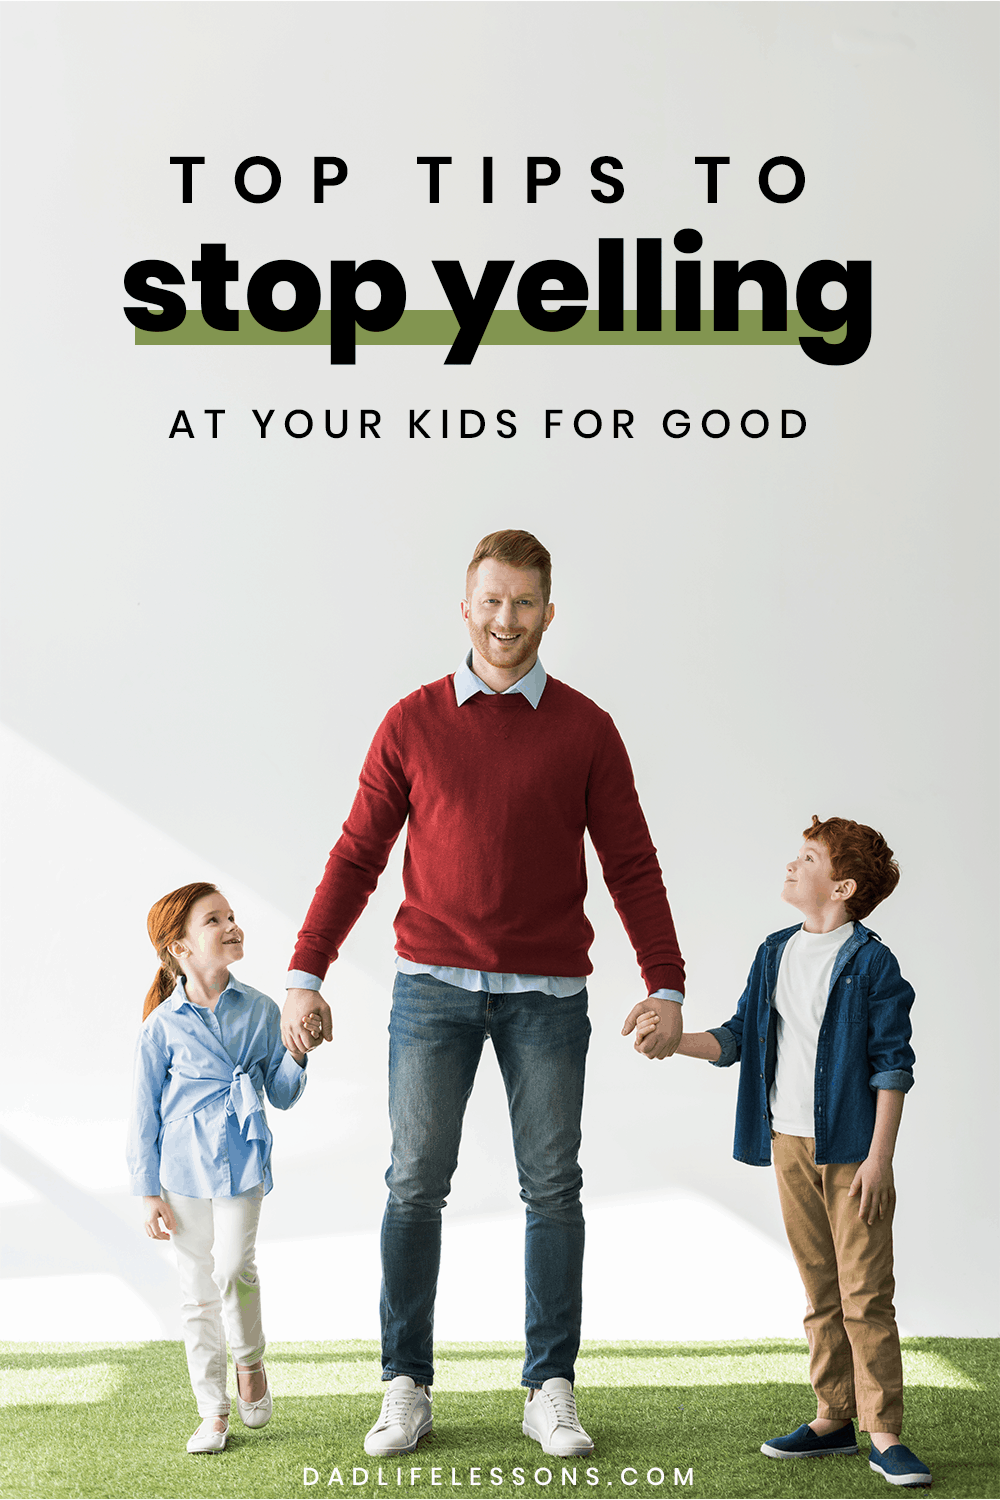 Stop Yelling: 6 Tips That Actually Help